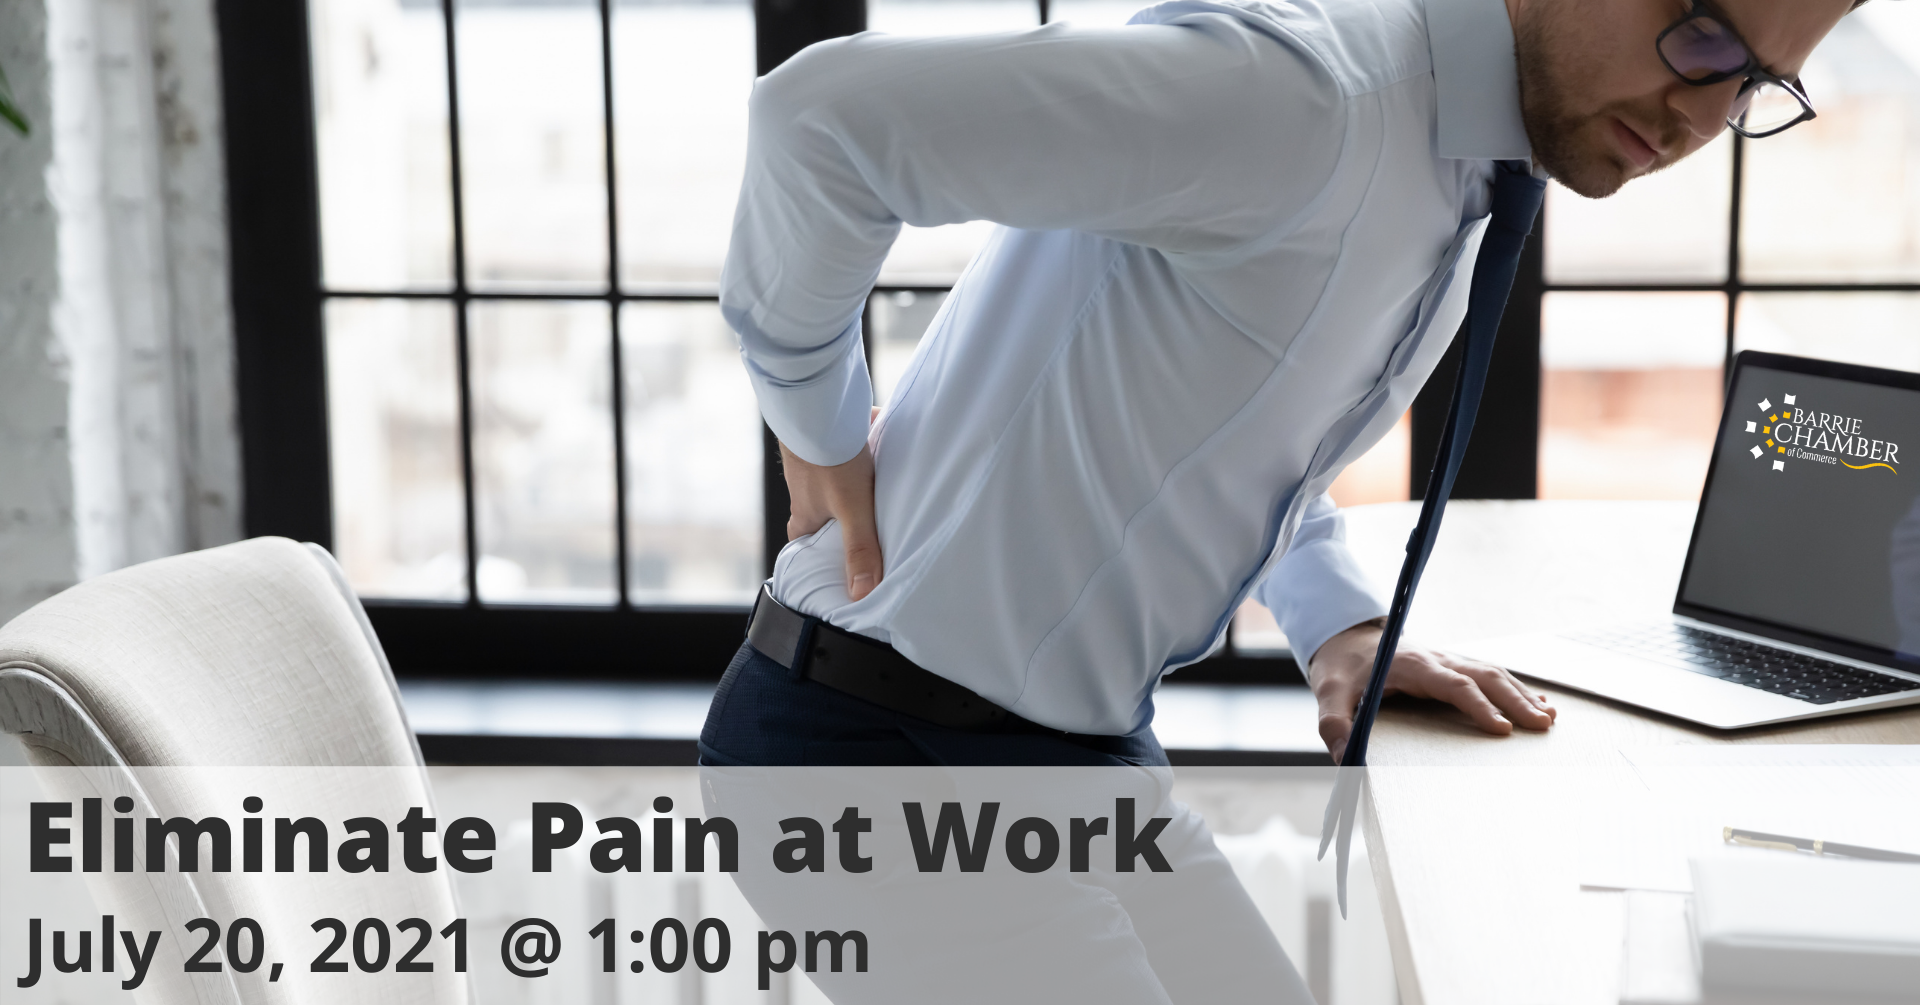 Eliminate Pain at Work, July 20 @ 1:00 pm